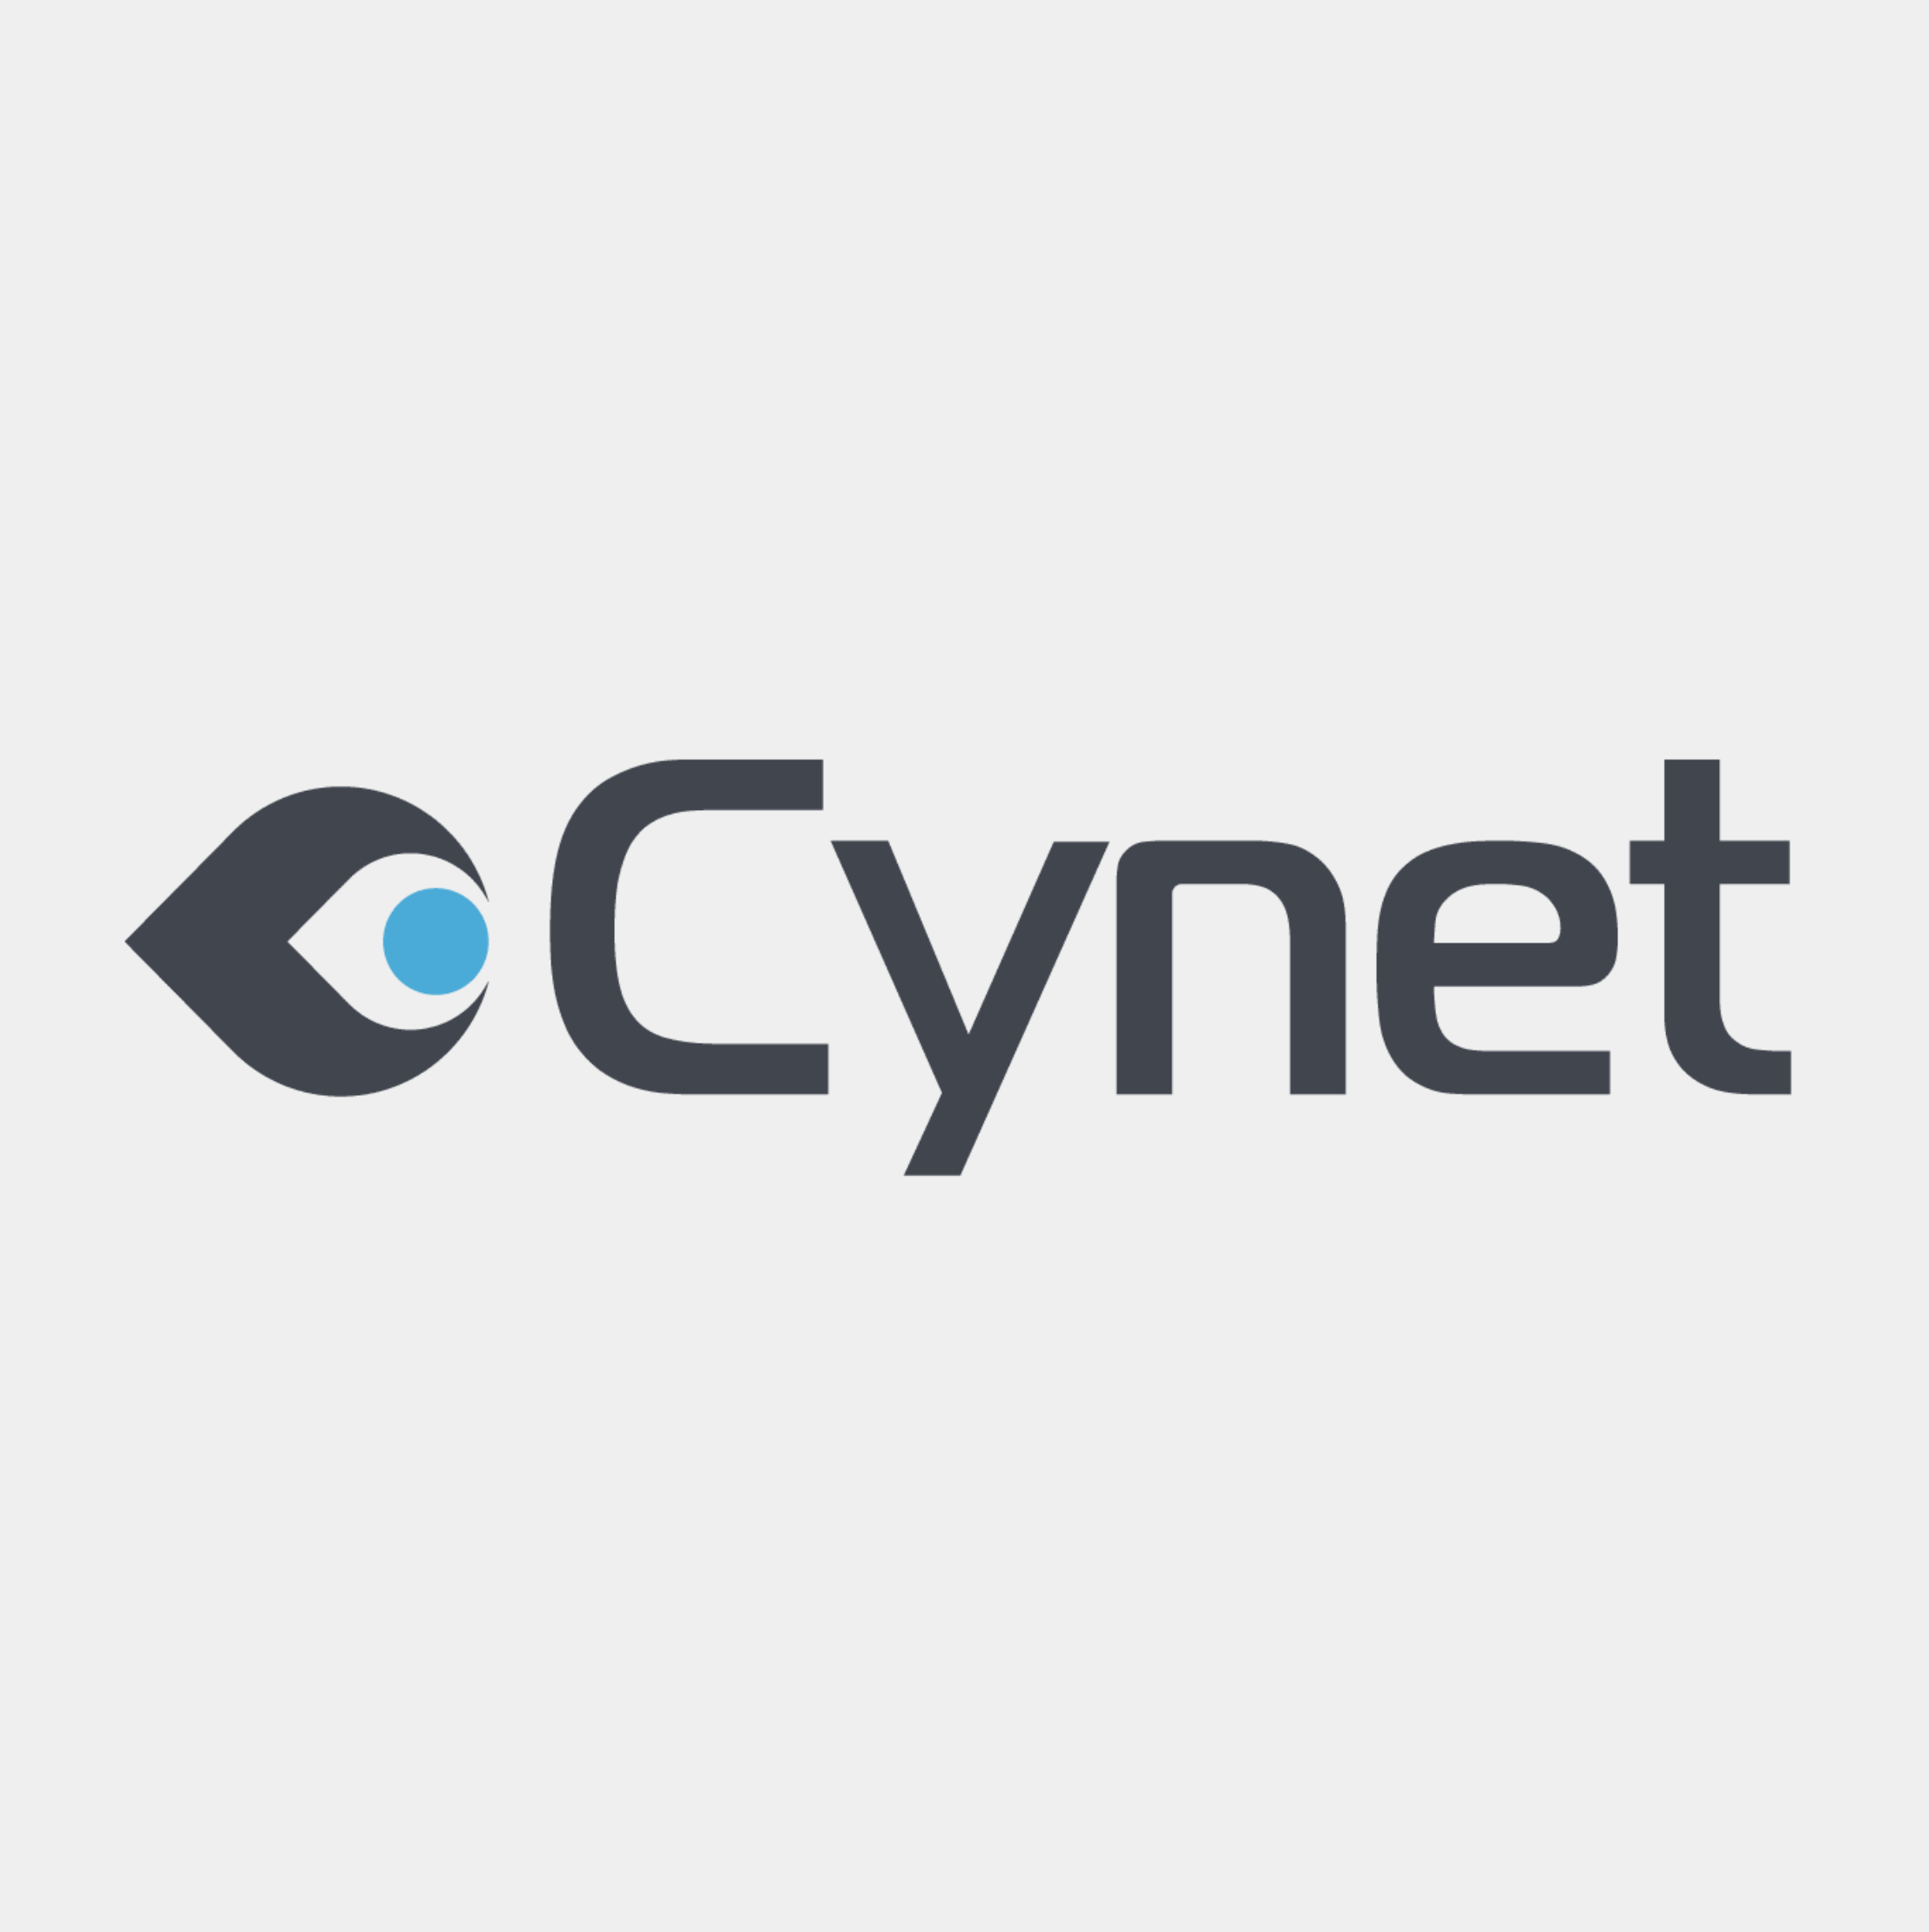 The logo for Cynet to introduce the topic ahead reviewing the Cynet 360 XDR solution.